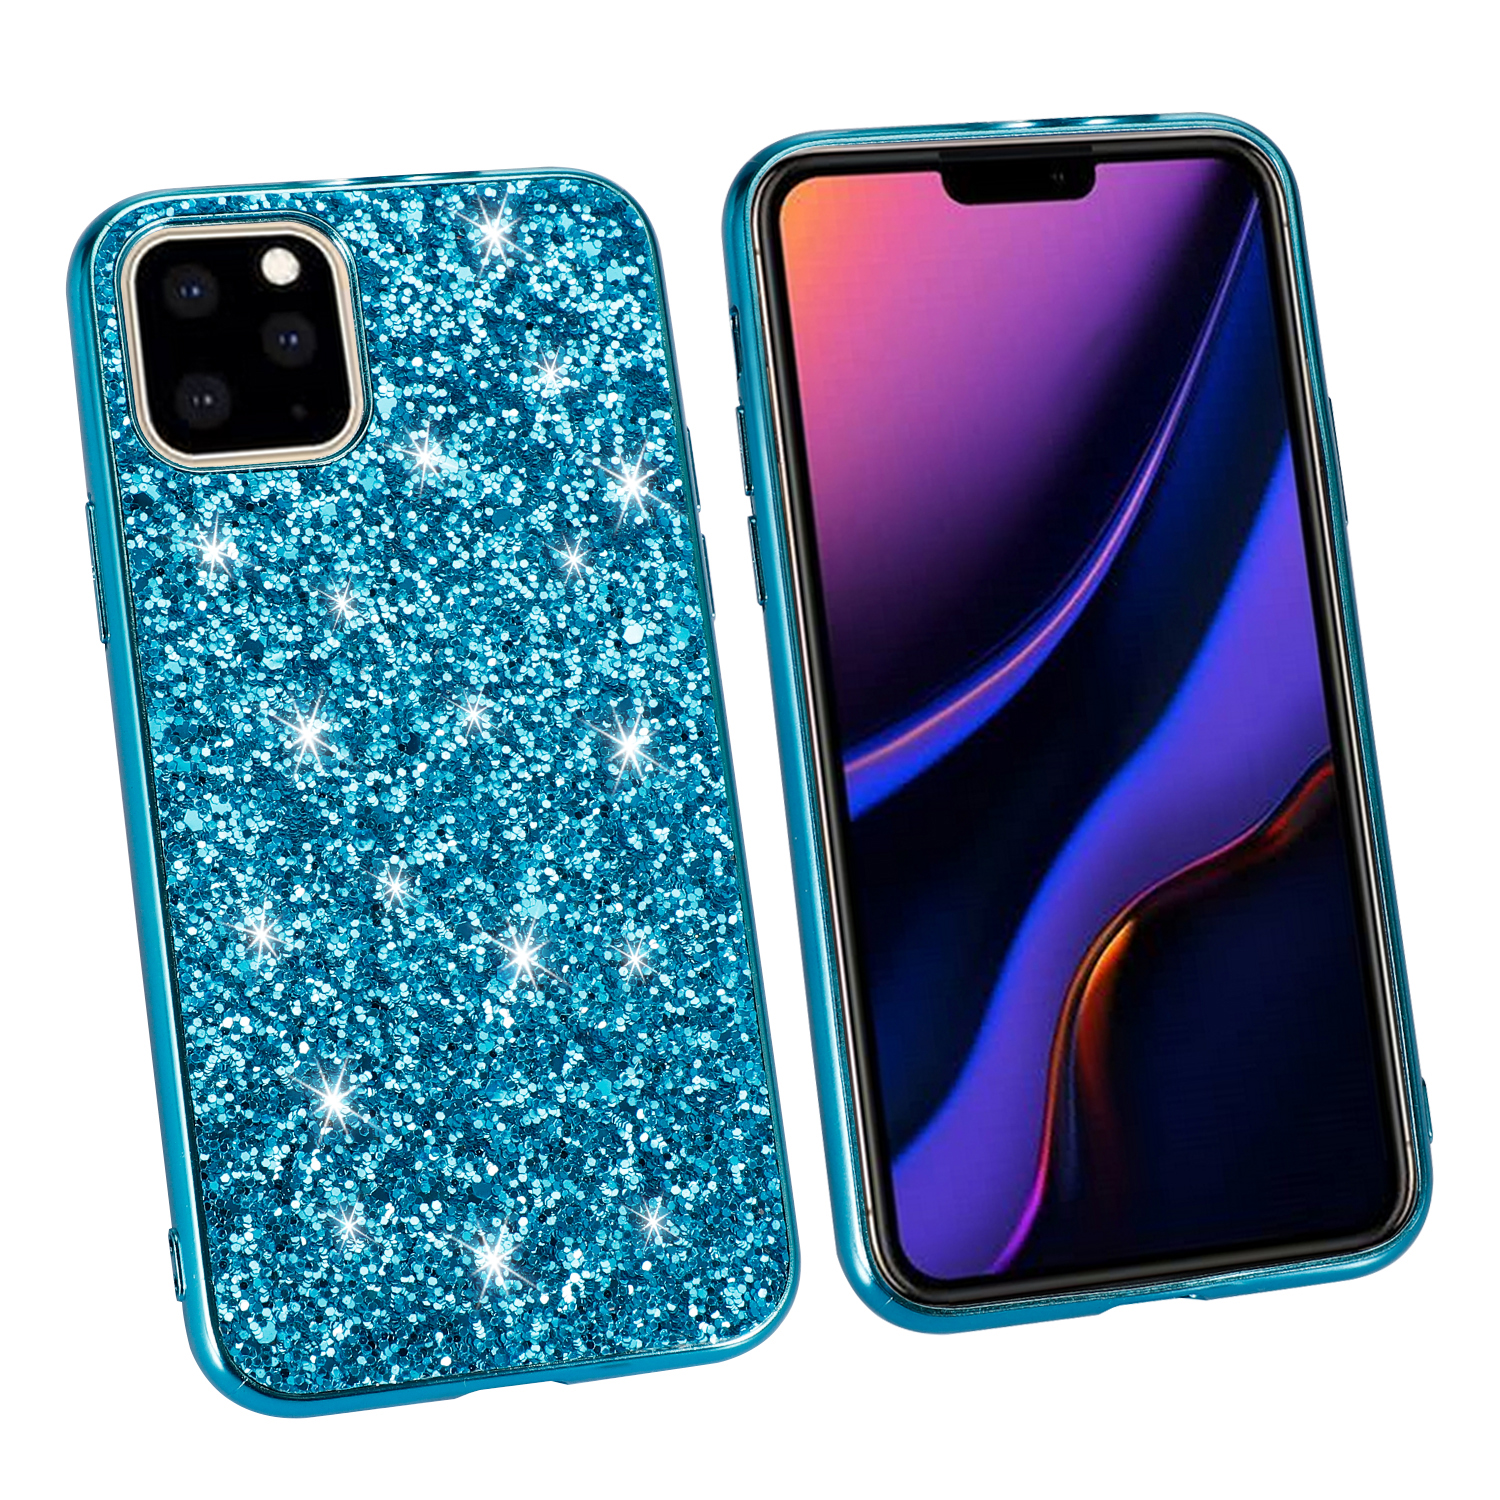 Shiny Glitter Girls Case for iPhone 11/11 Pro/11 Pro Max 1